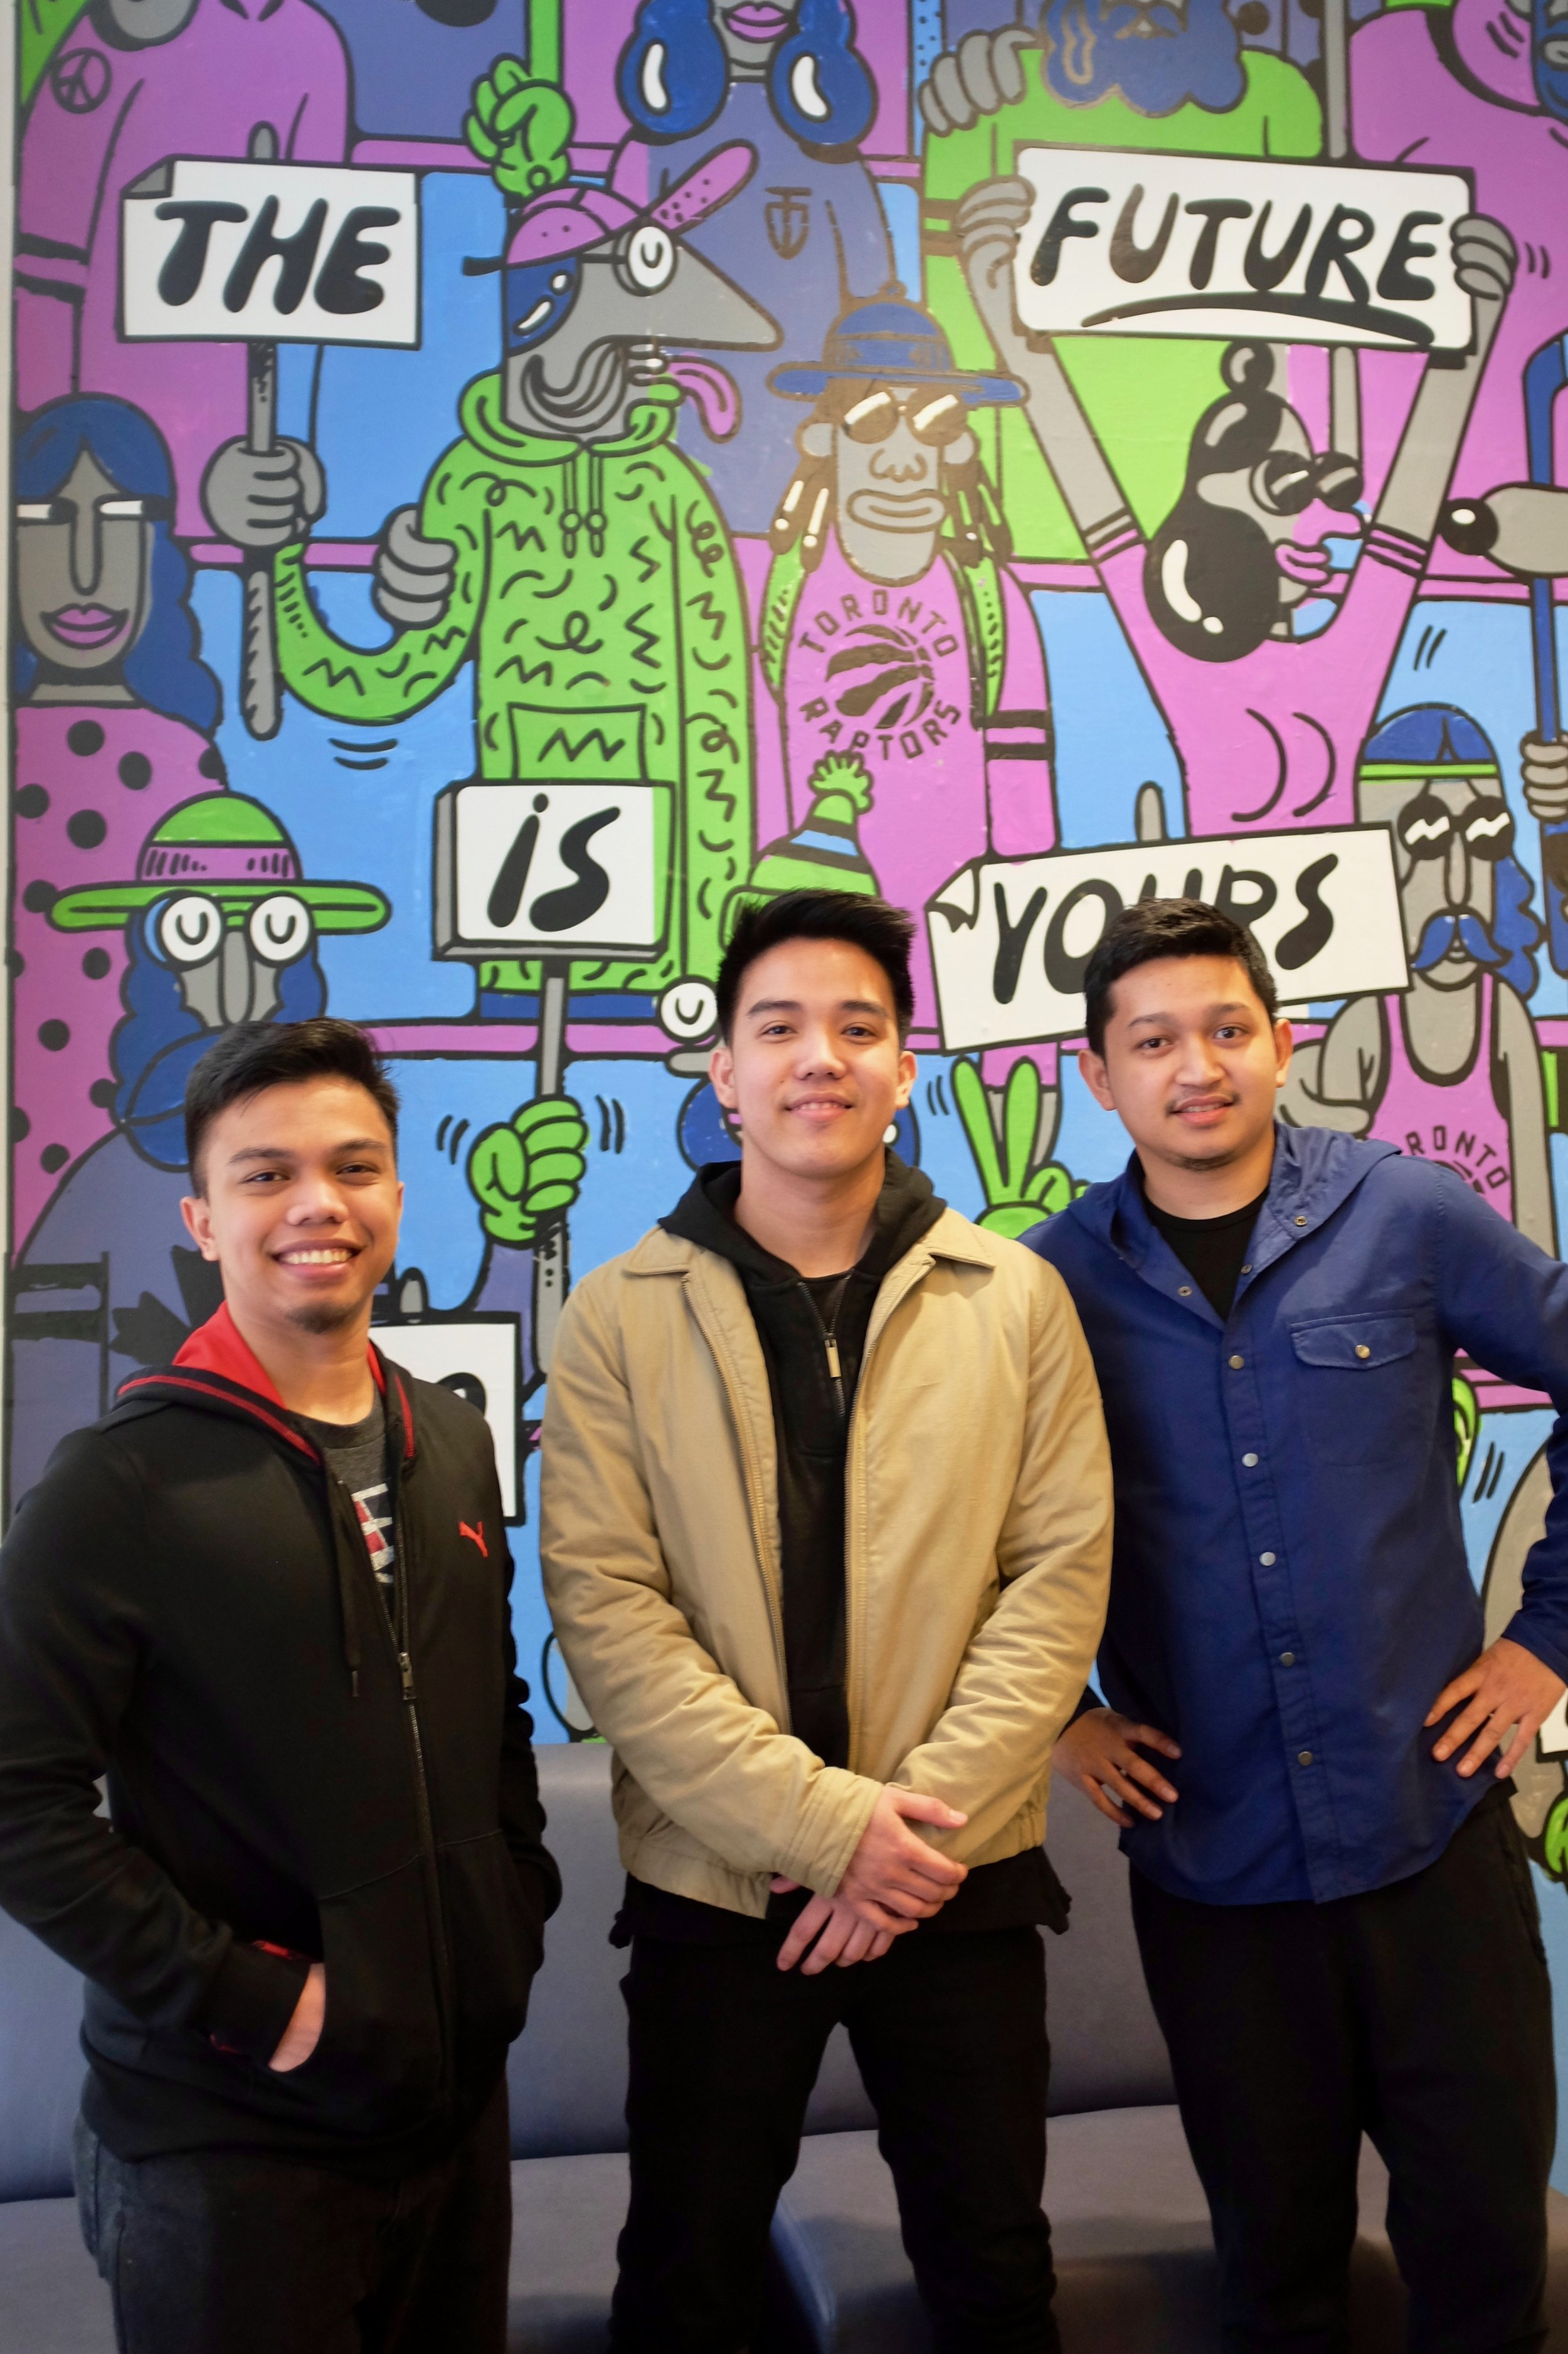 """The Future is Yours"" - Ezra Baltazar, Paolo Dela Cruz, and Jim Castor. Photo by J. Austria."